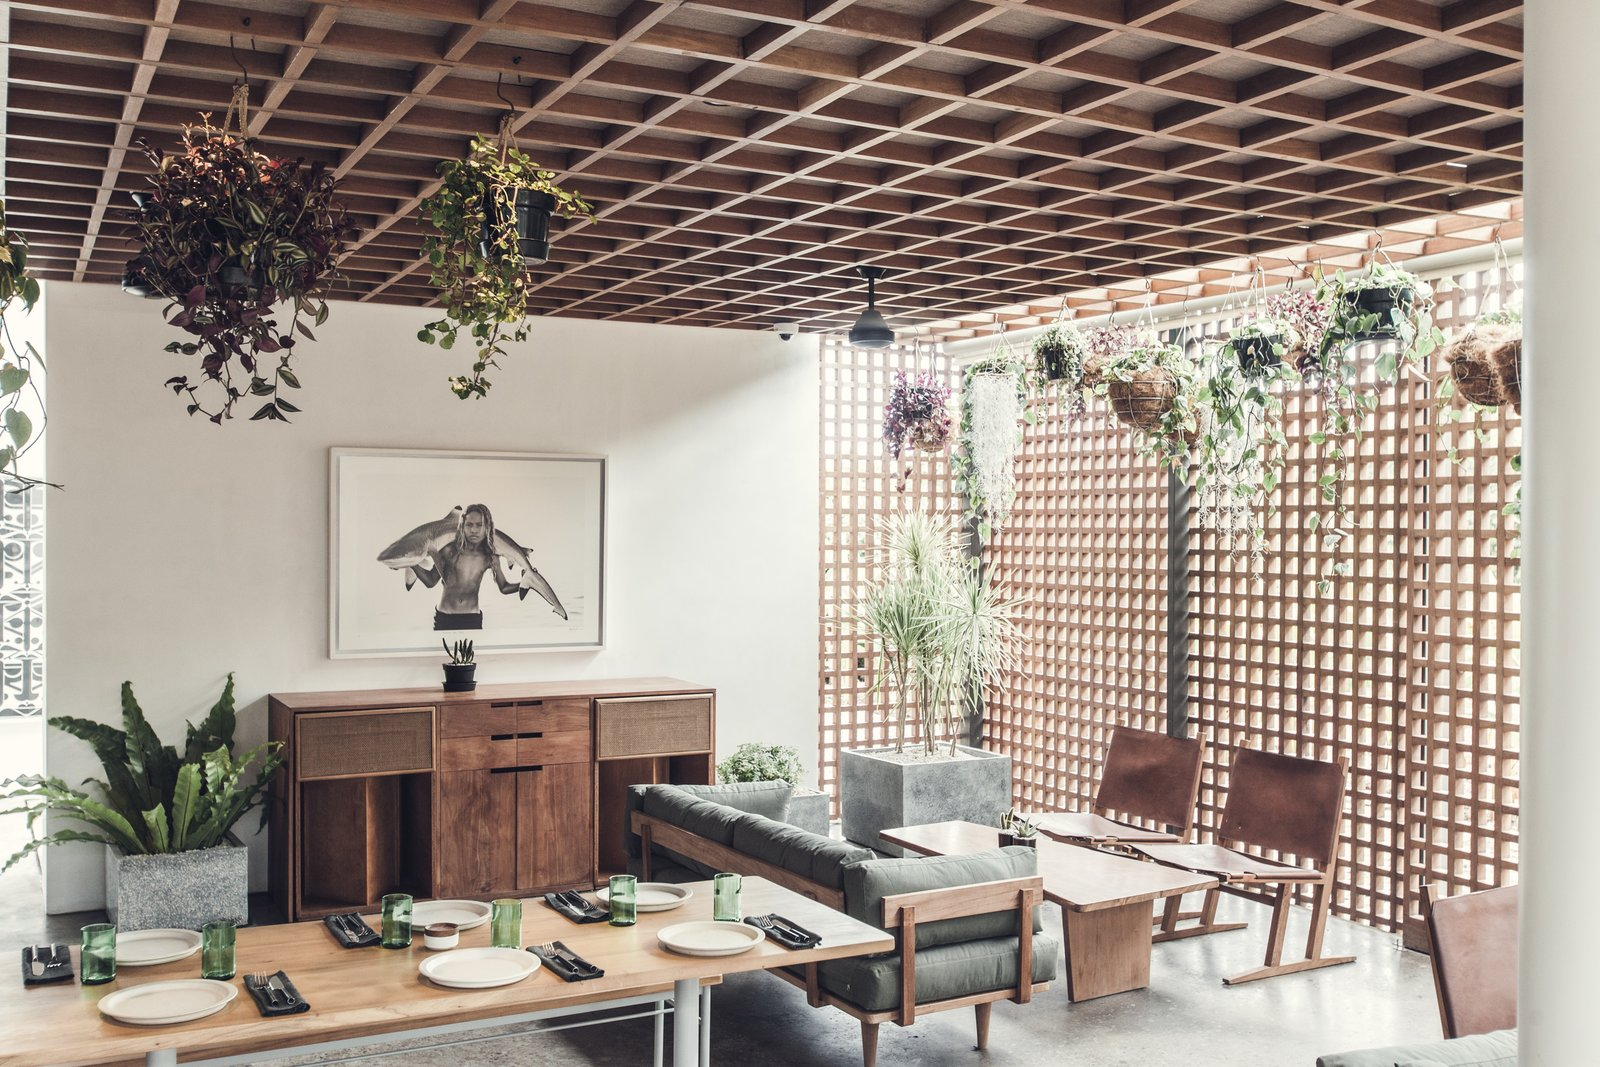 Living Room, Console Tables, Ceiling Lighting, Table, Chair, Sofa, Coffee Tables, and Concrete Floor  The Slow from Go Beyond the Basics in an Australian Fashion Designer's Surf-Inspired Bali Hotel